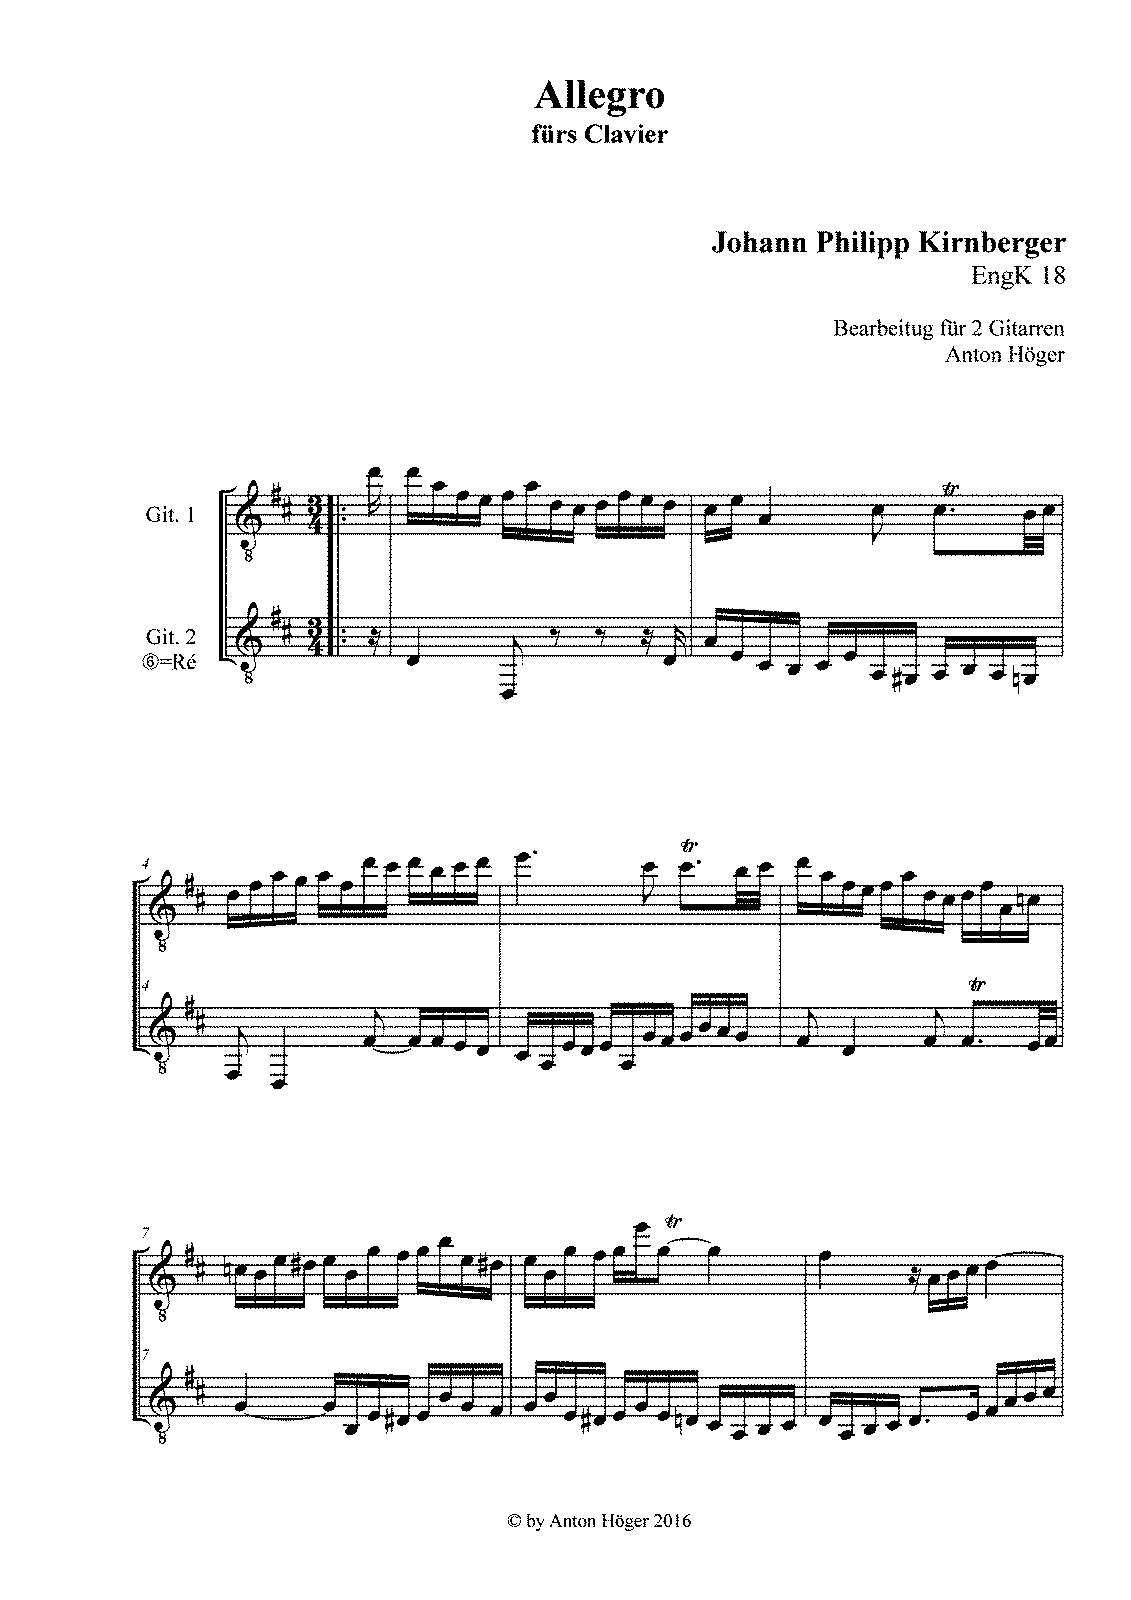 PMLP297907-Kirnberger, Johann Philipp - Allegro in G major, EngK 18-2Git.pdf